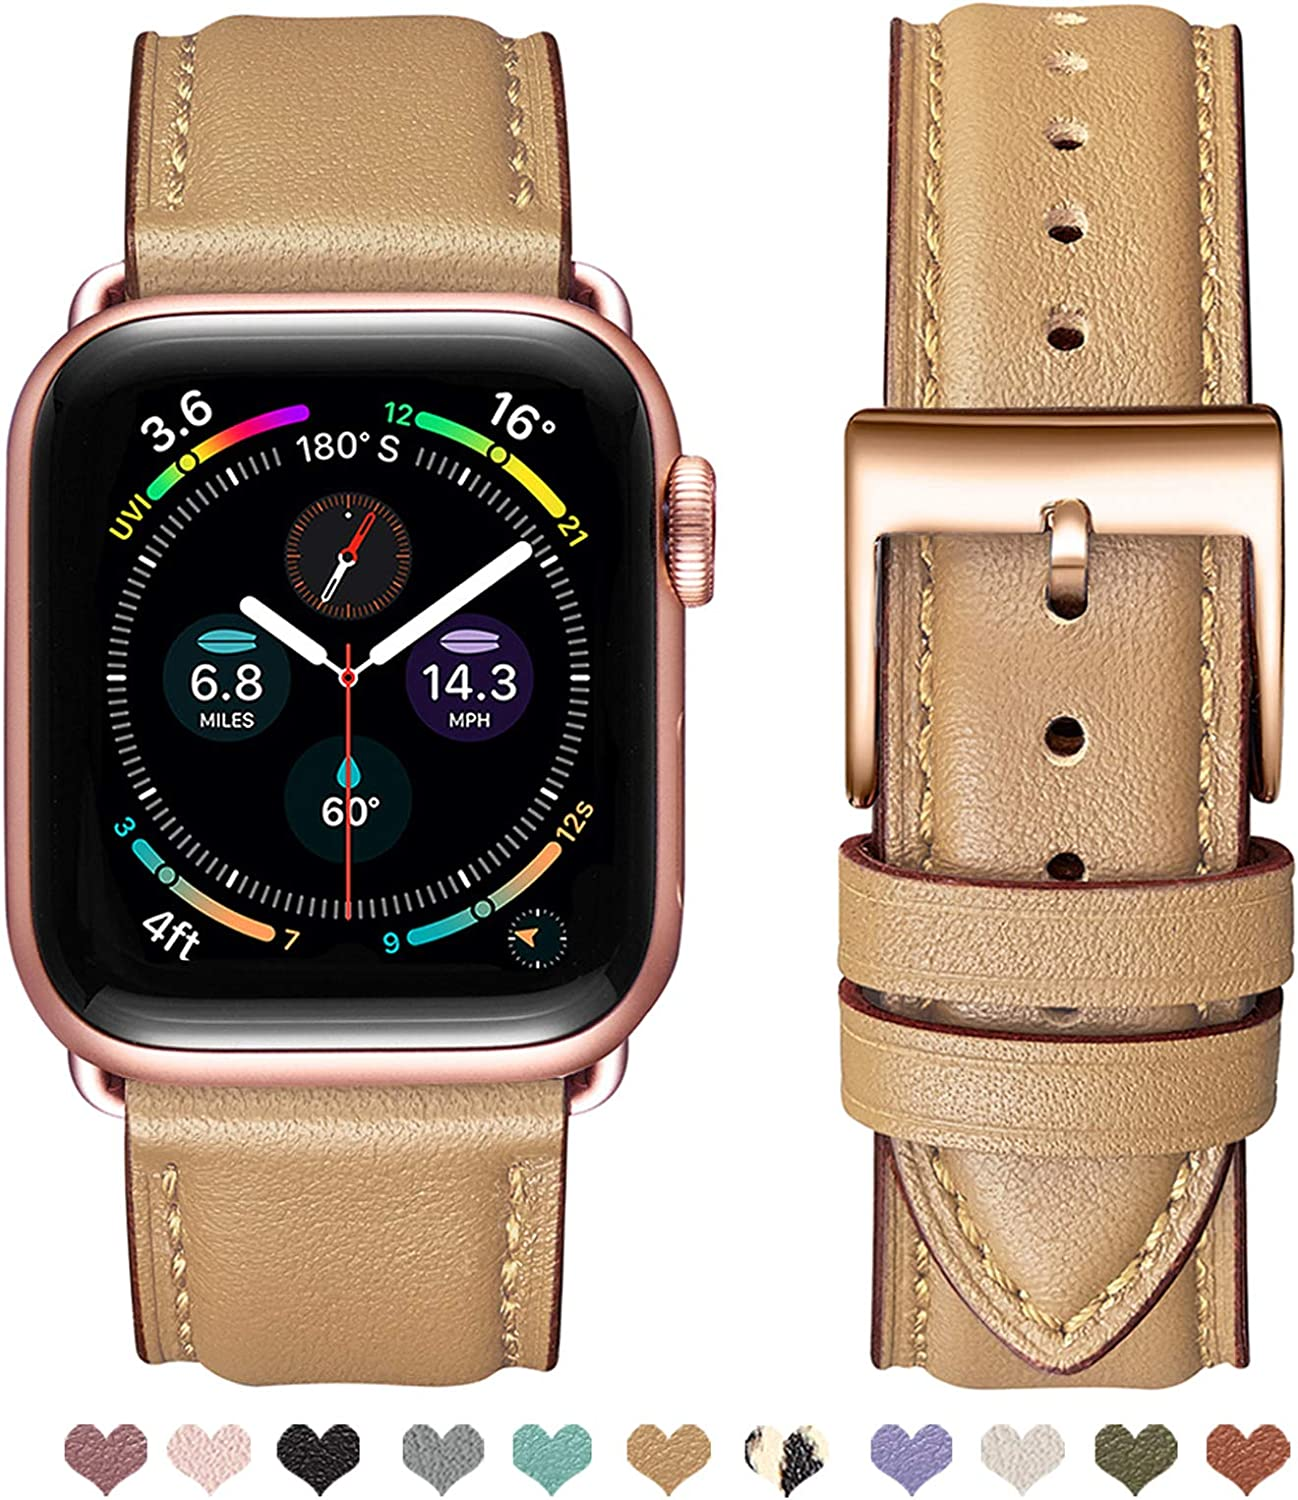 OMIU Square Bands Compatible for Apple Watch 38mm 40mm 42mm 44mm, Genuine Leather Replacement Band Compatible with Apple Watch Series 6/5/4/3/2/1, iWatch SE (Camel/Rose Gold Connector, 42mm 44mm)